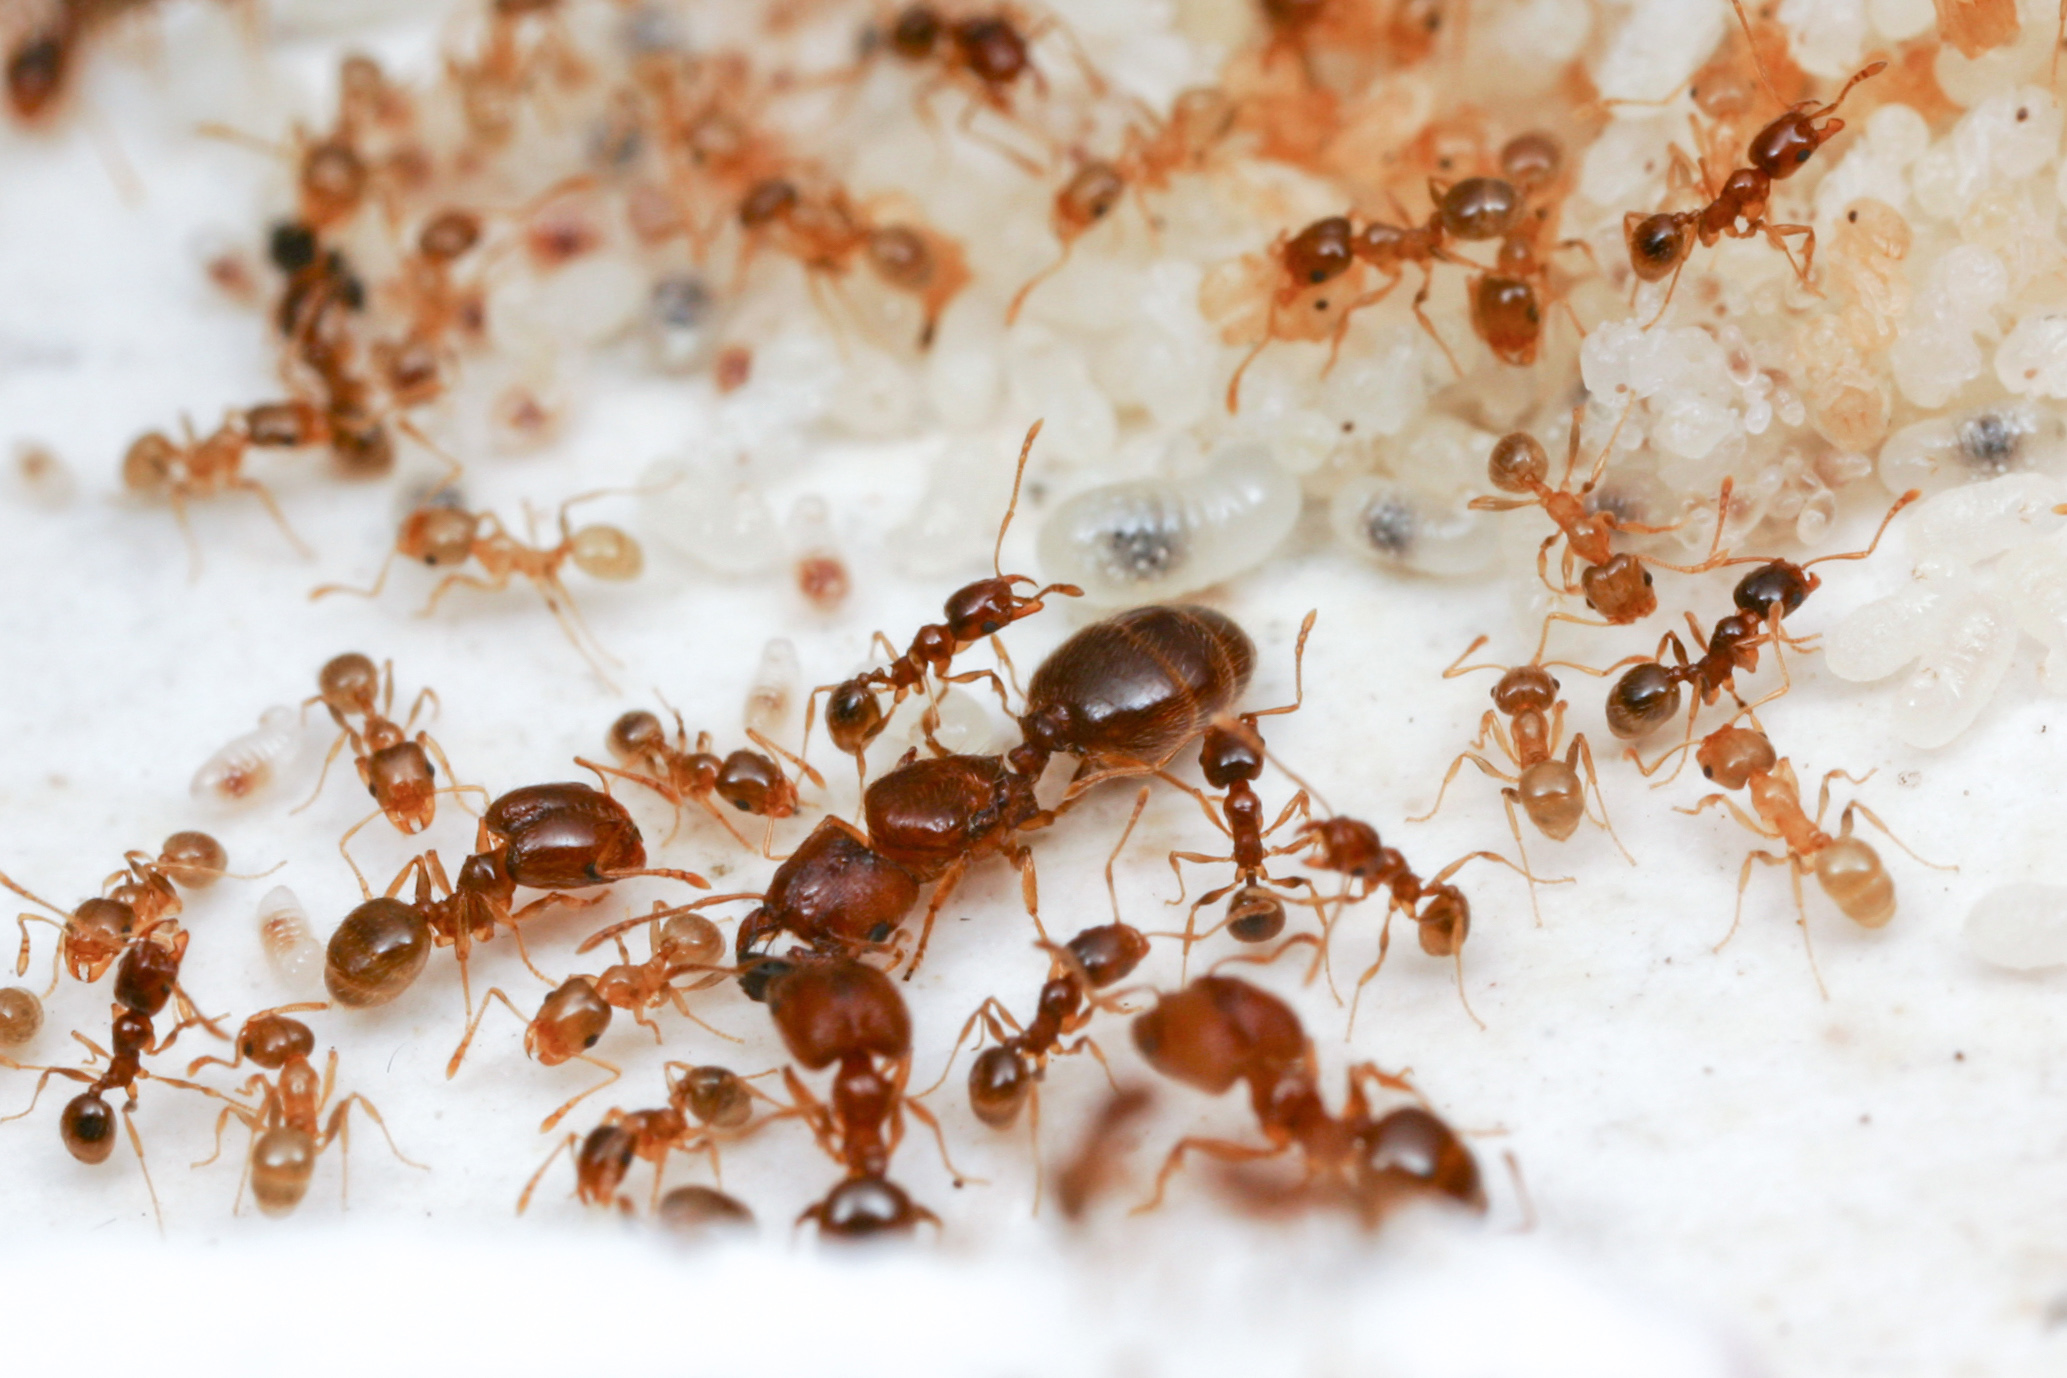 All about ants | Welcome Wildlife